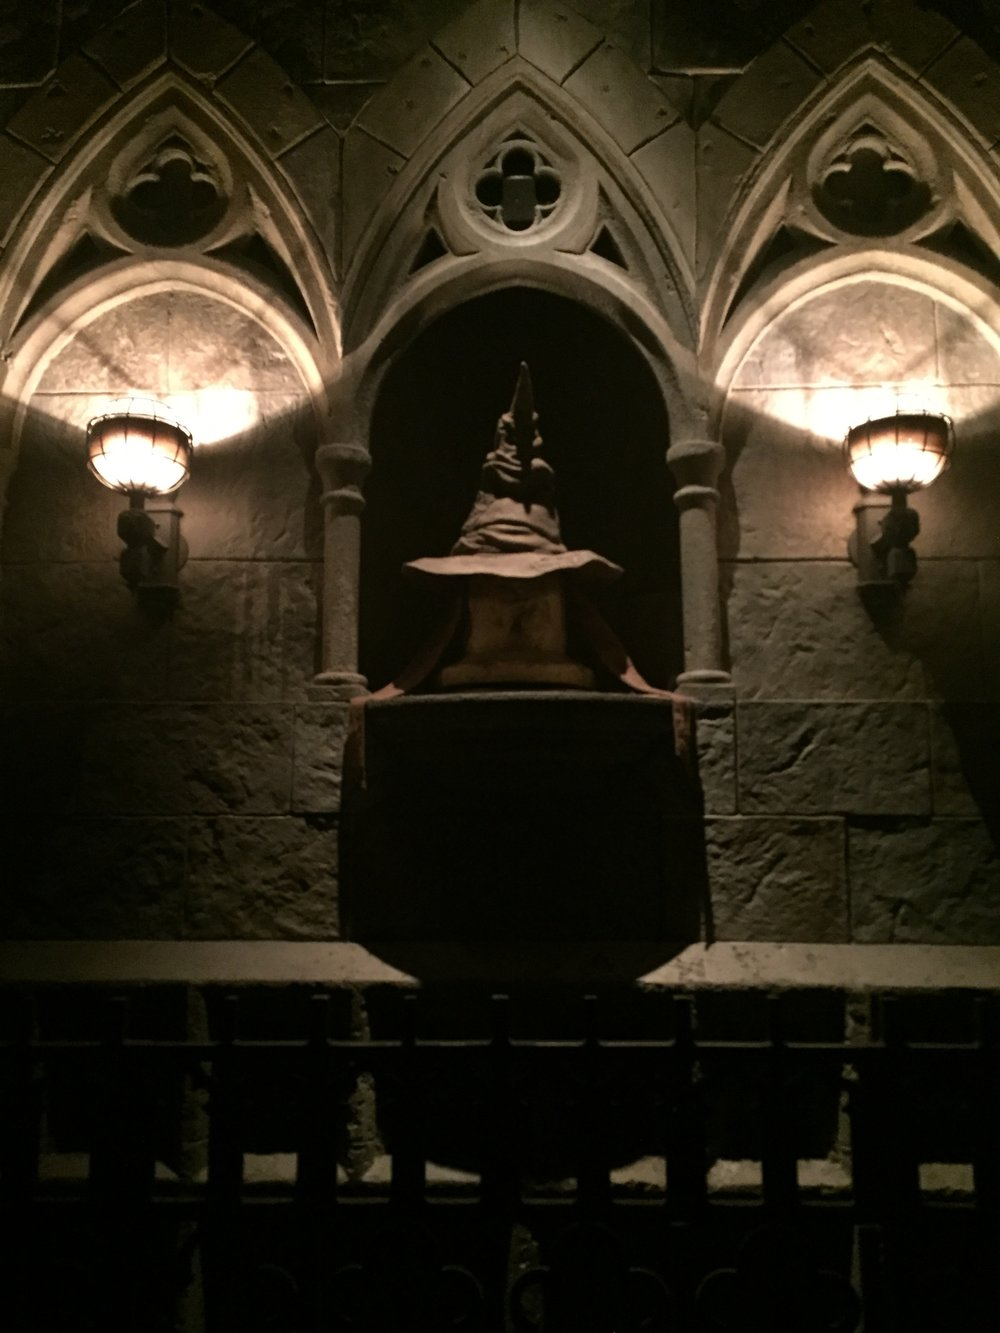 """[image description: Three small alcoves with the sorting hat on a pedestal in the middle with lamps on either side illuminating it. The sorting hat is a brown, pointy """"witch"""" hat with a scowling face made by the hat's wrinkles.]"""